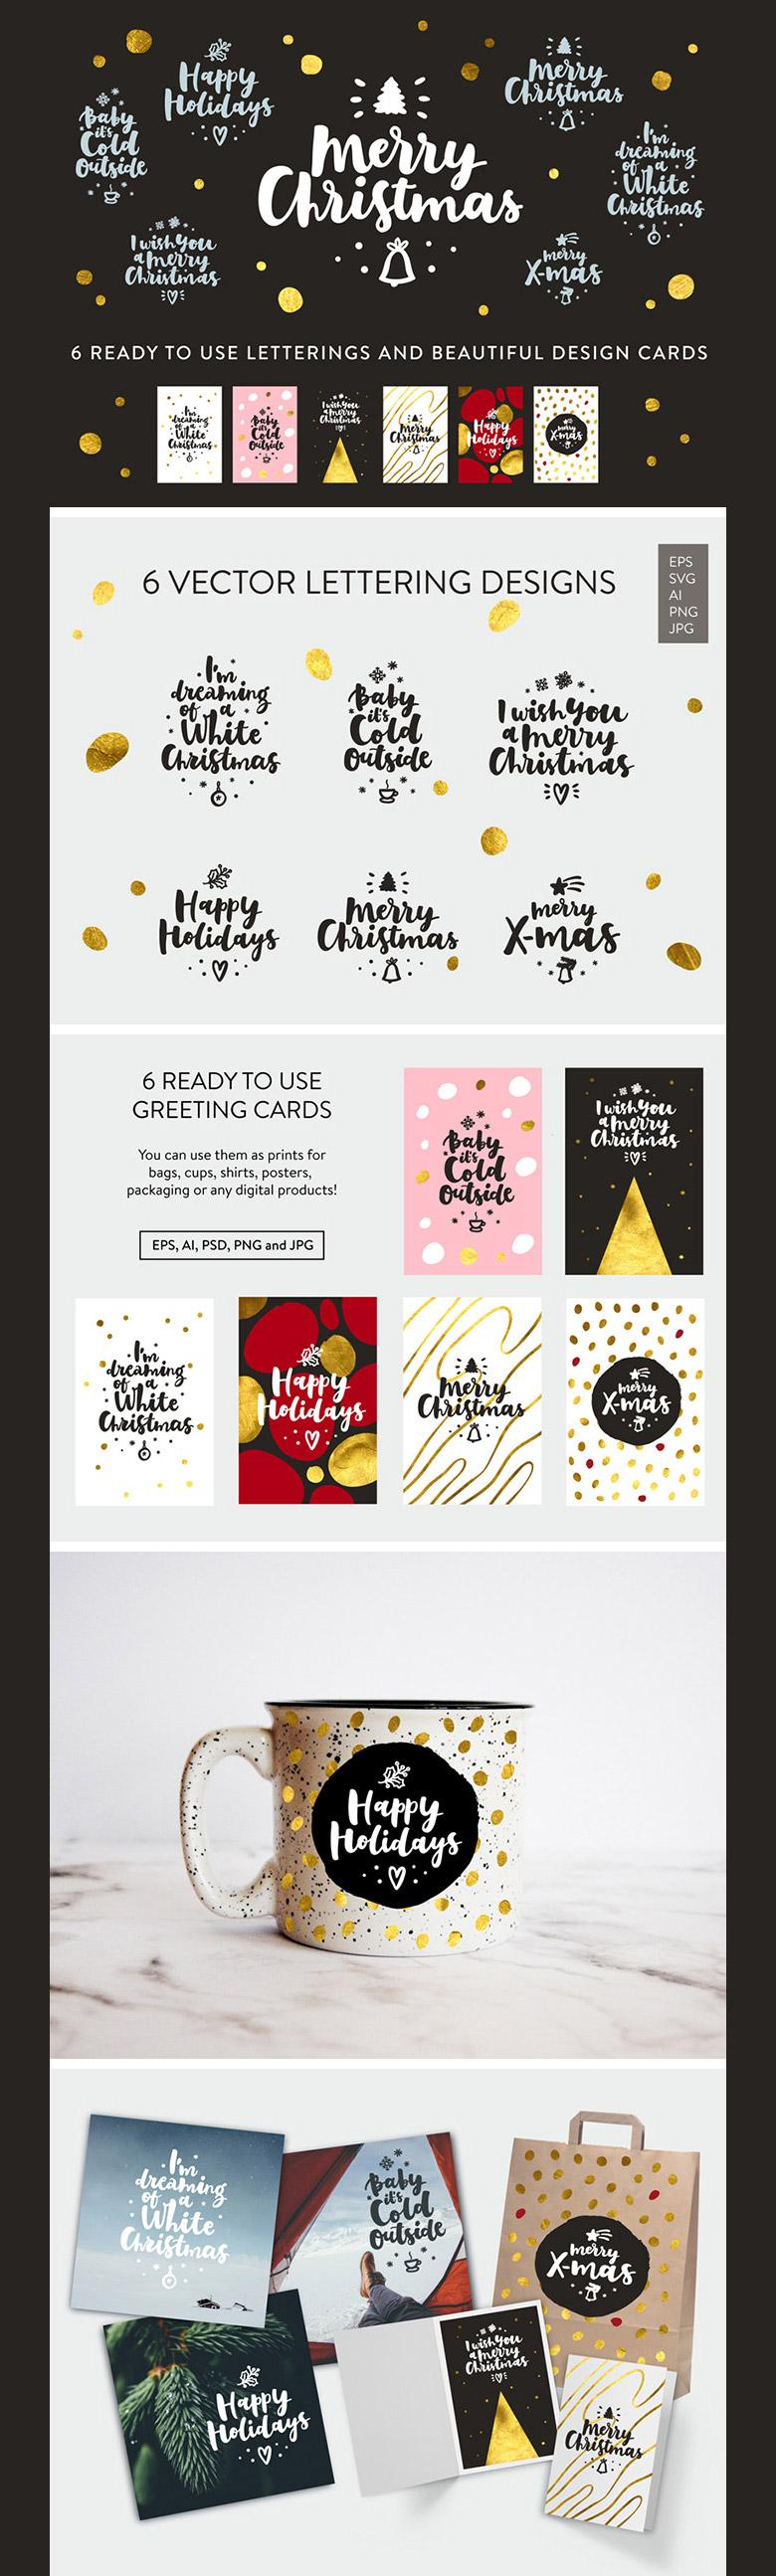 Merry Christmas Typography Vector Pack